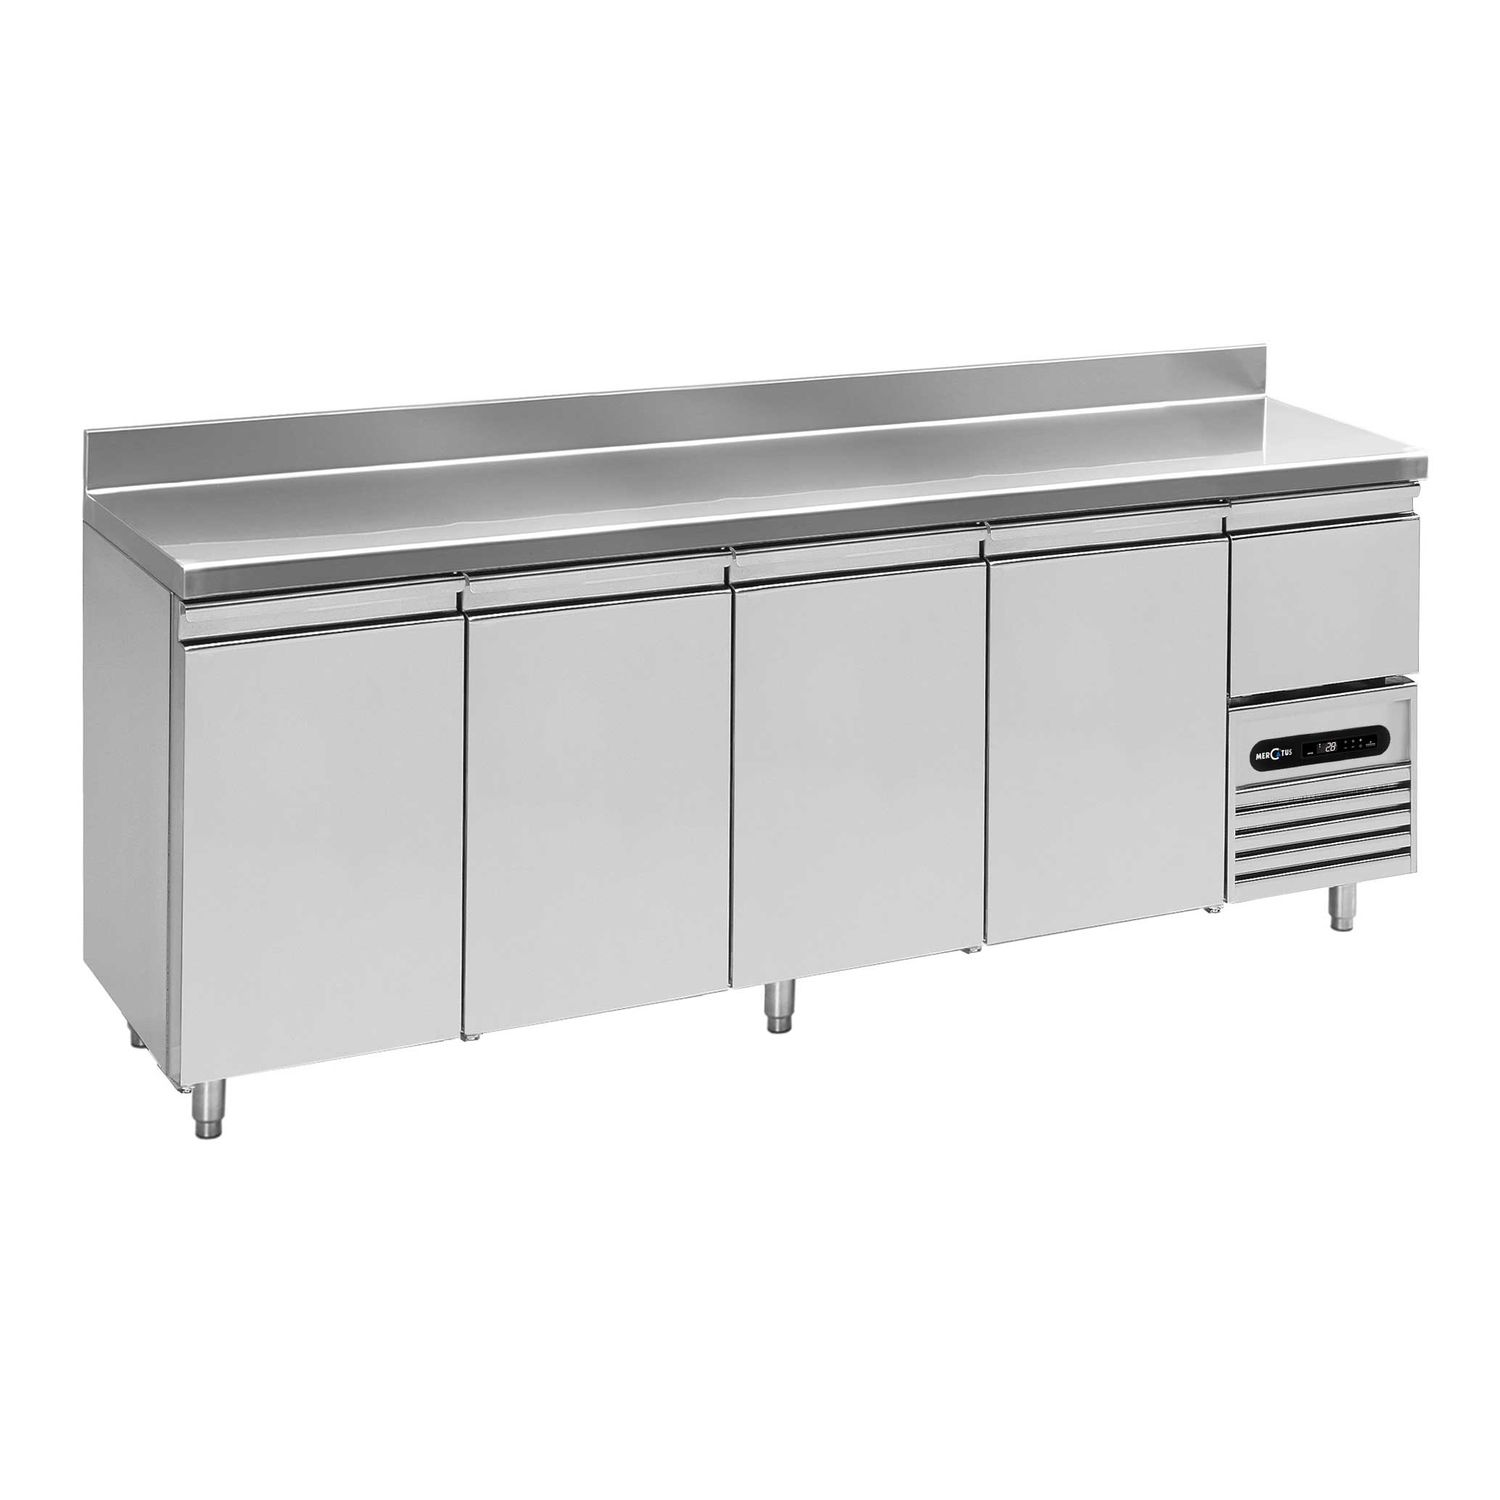 Stainless steel prep table refrigerated with storage compartment stainless steel prep table refrigerated with storage compartment height adjustable snack bar l0 2490 watchthetrailerfo